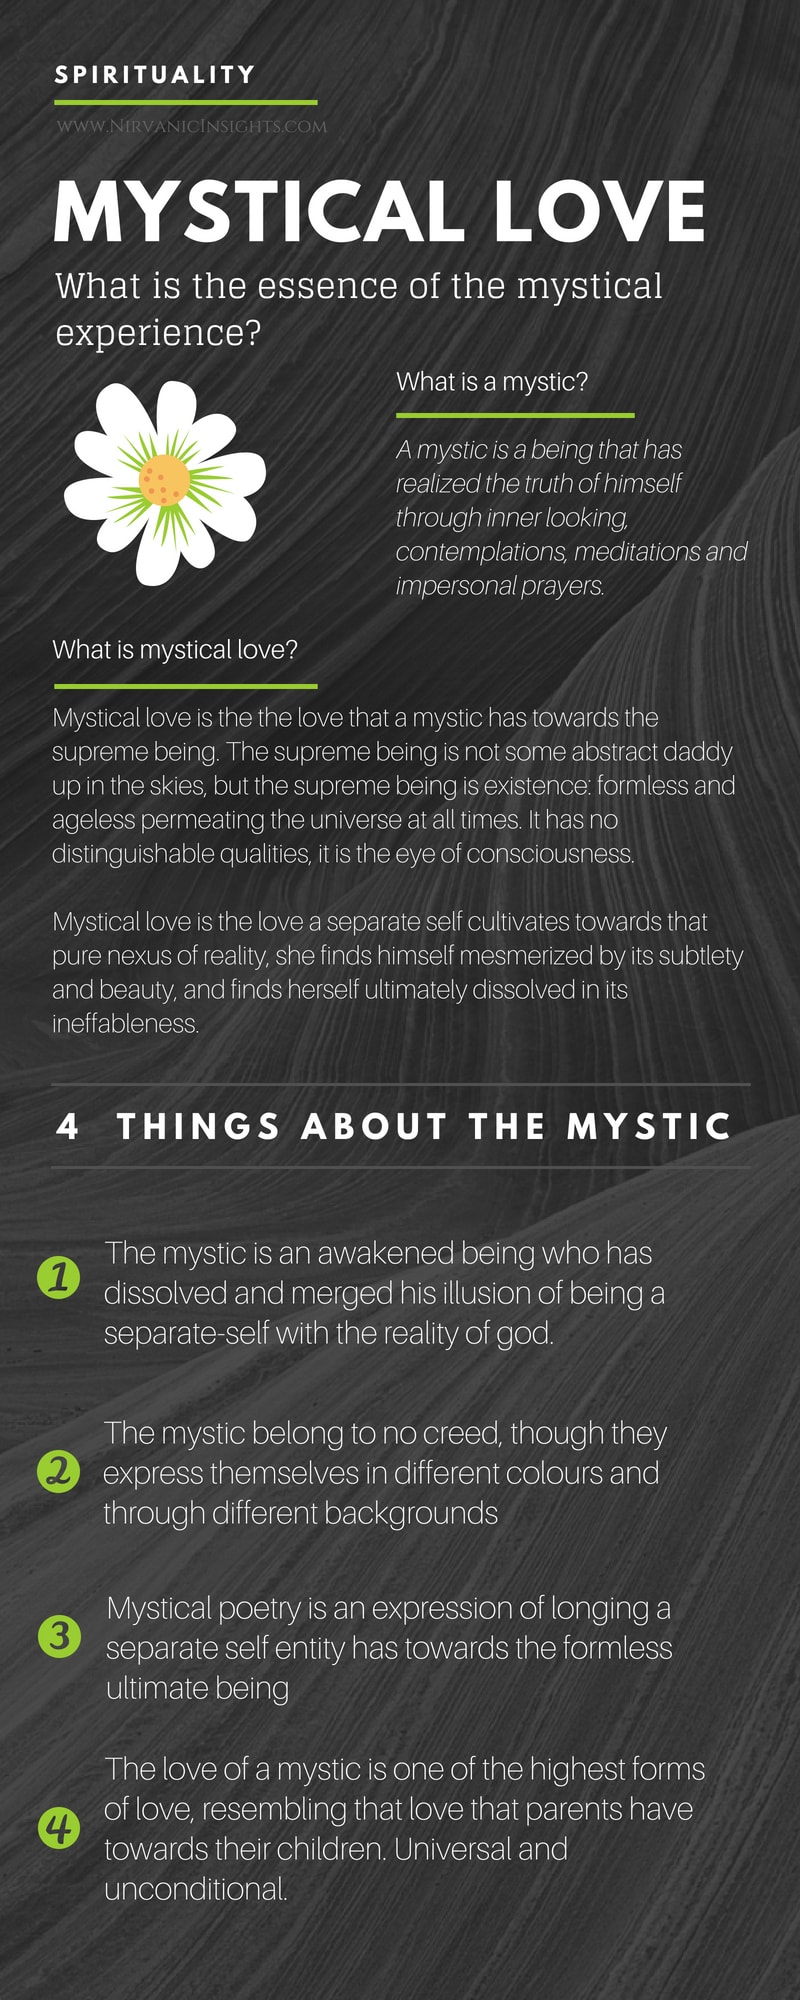 What is mystical love?